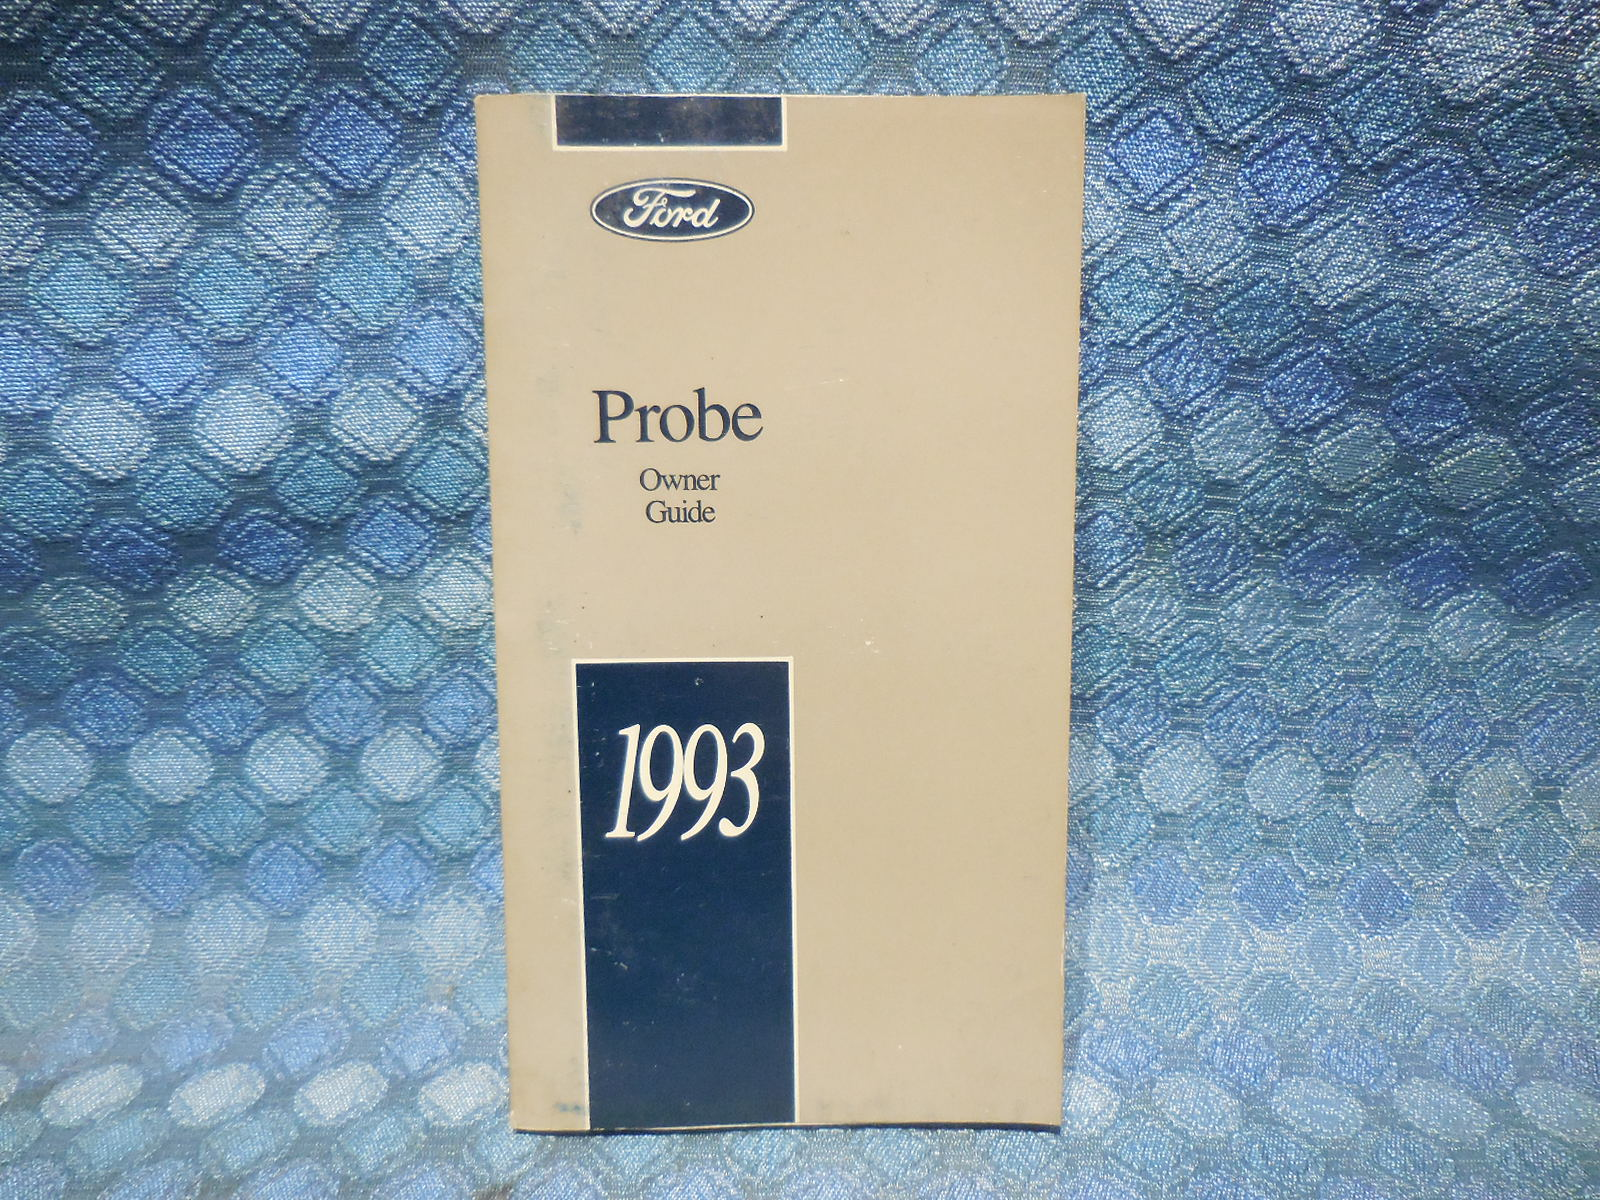 1993 Ford Probe Original Owners Manual / Guide